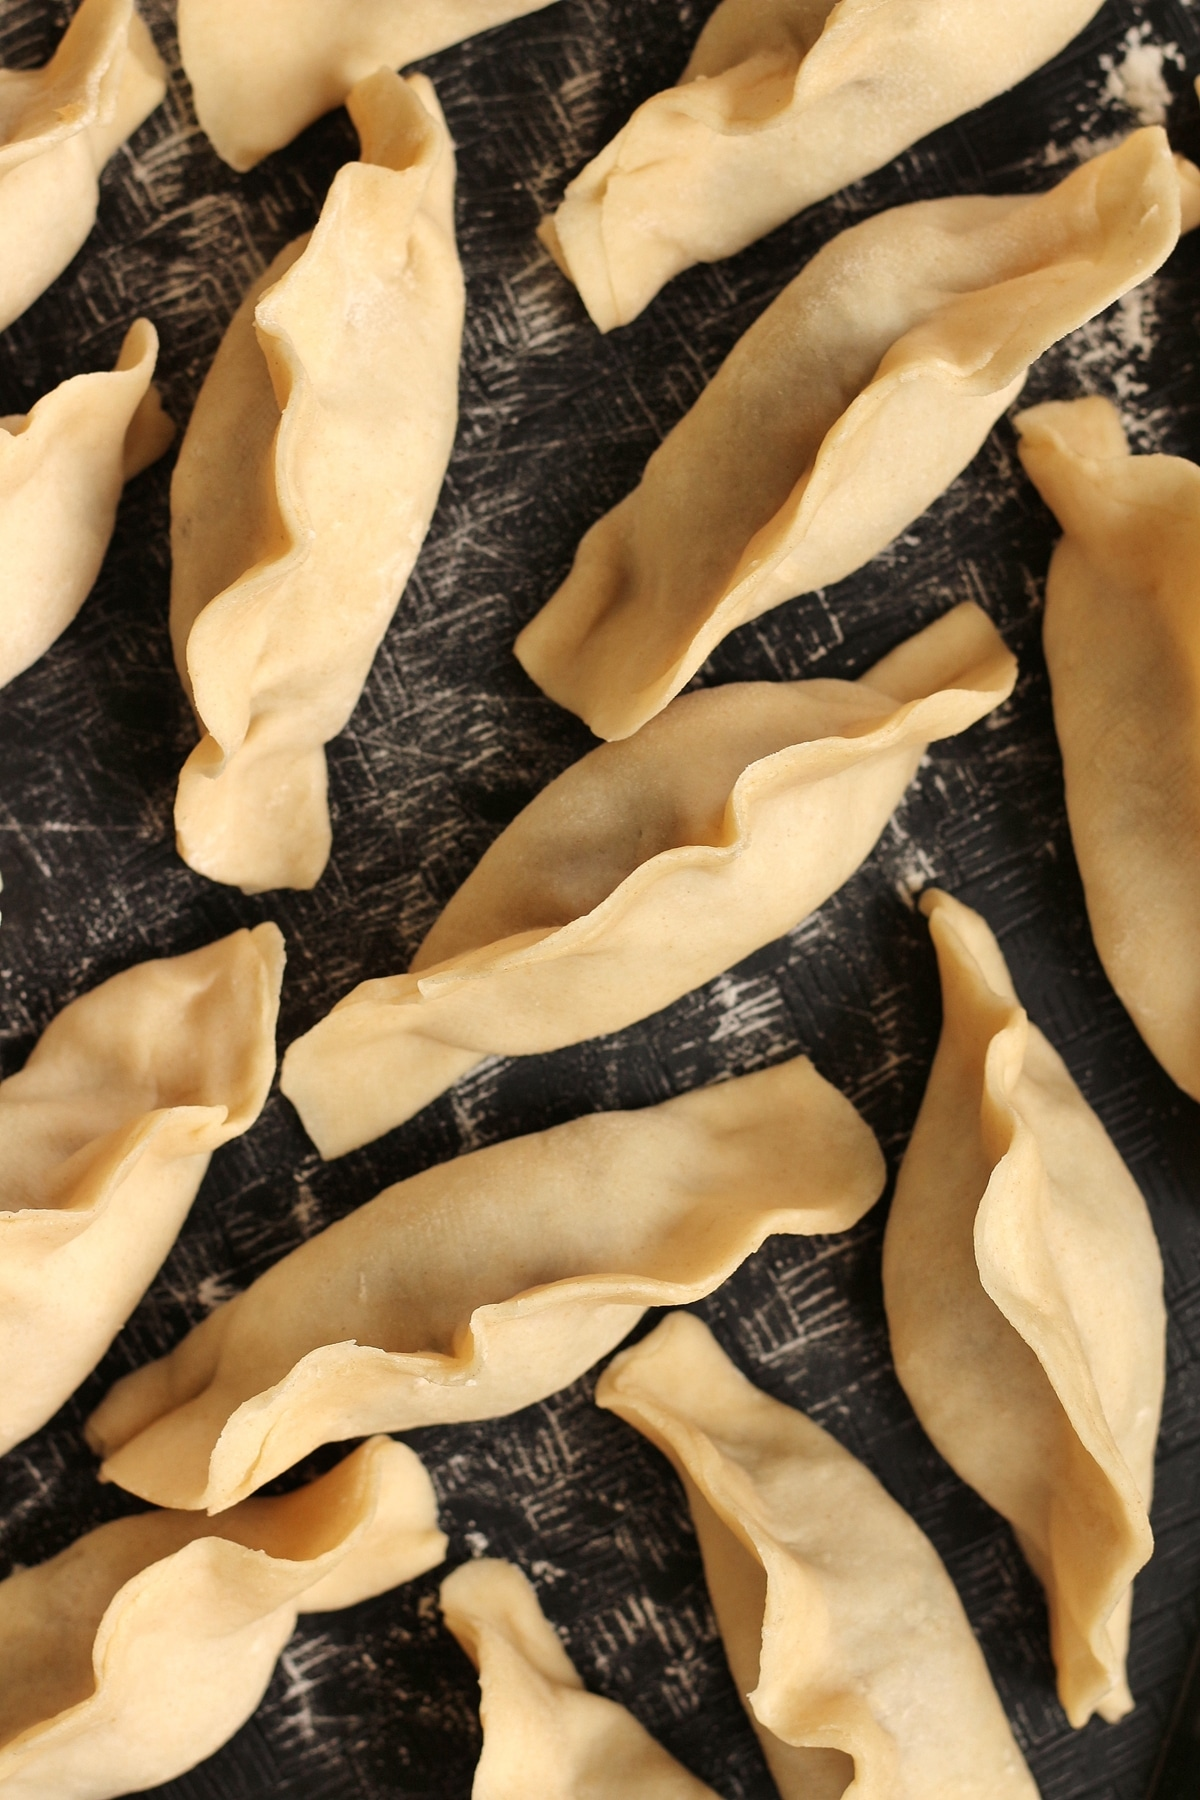 overhead view of uncooked Chinese dumplings on a black surface